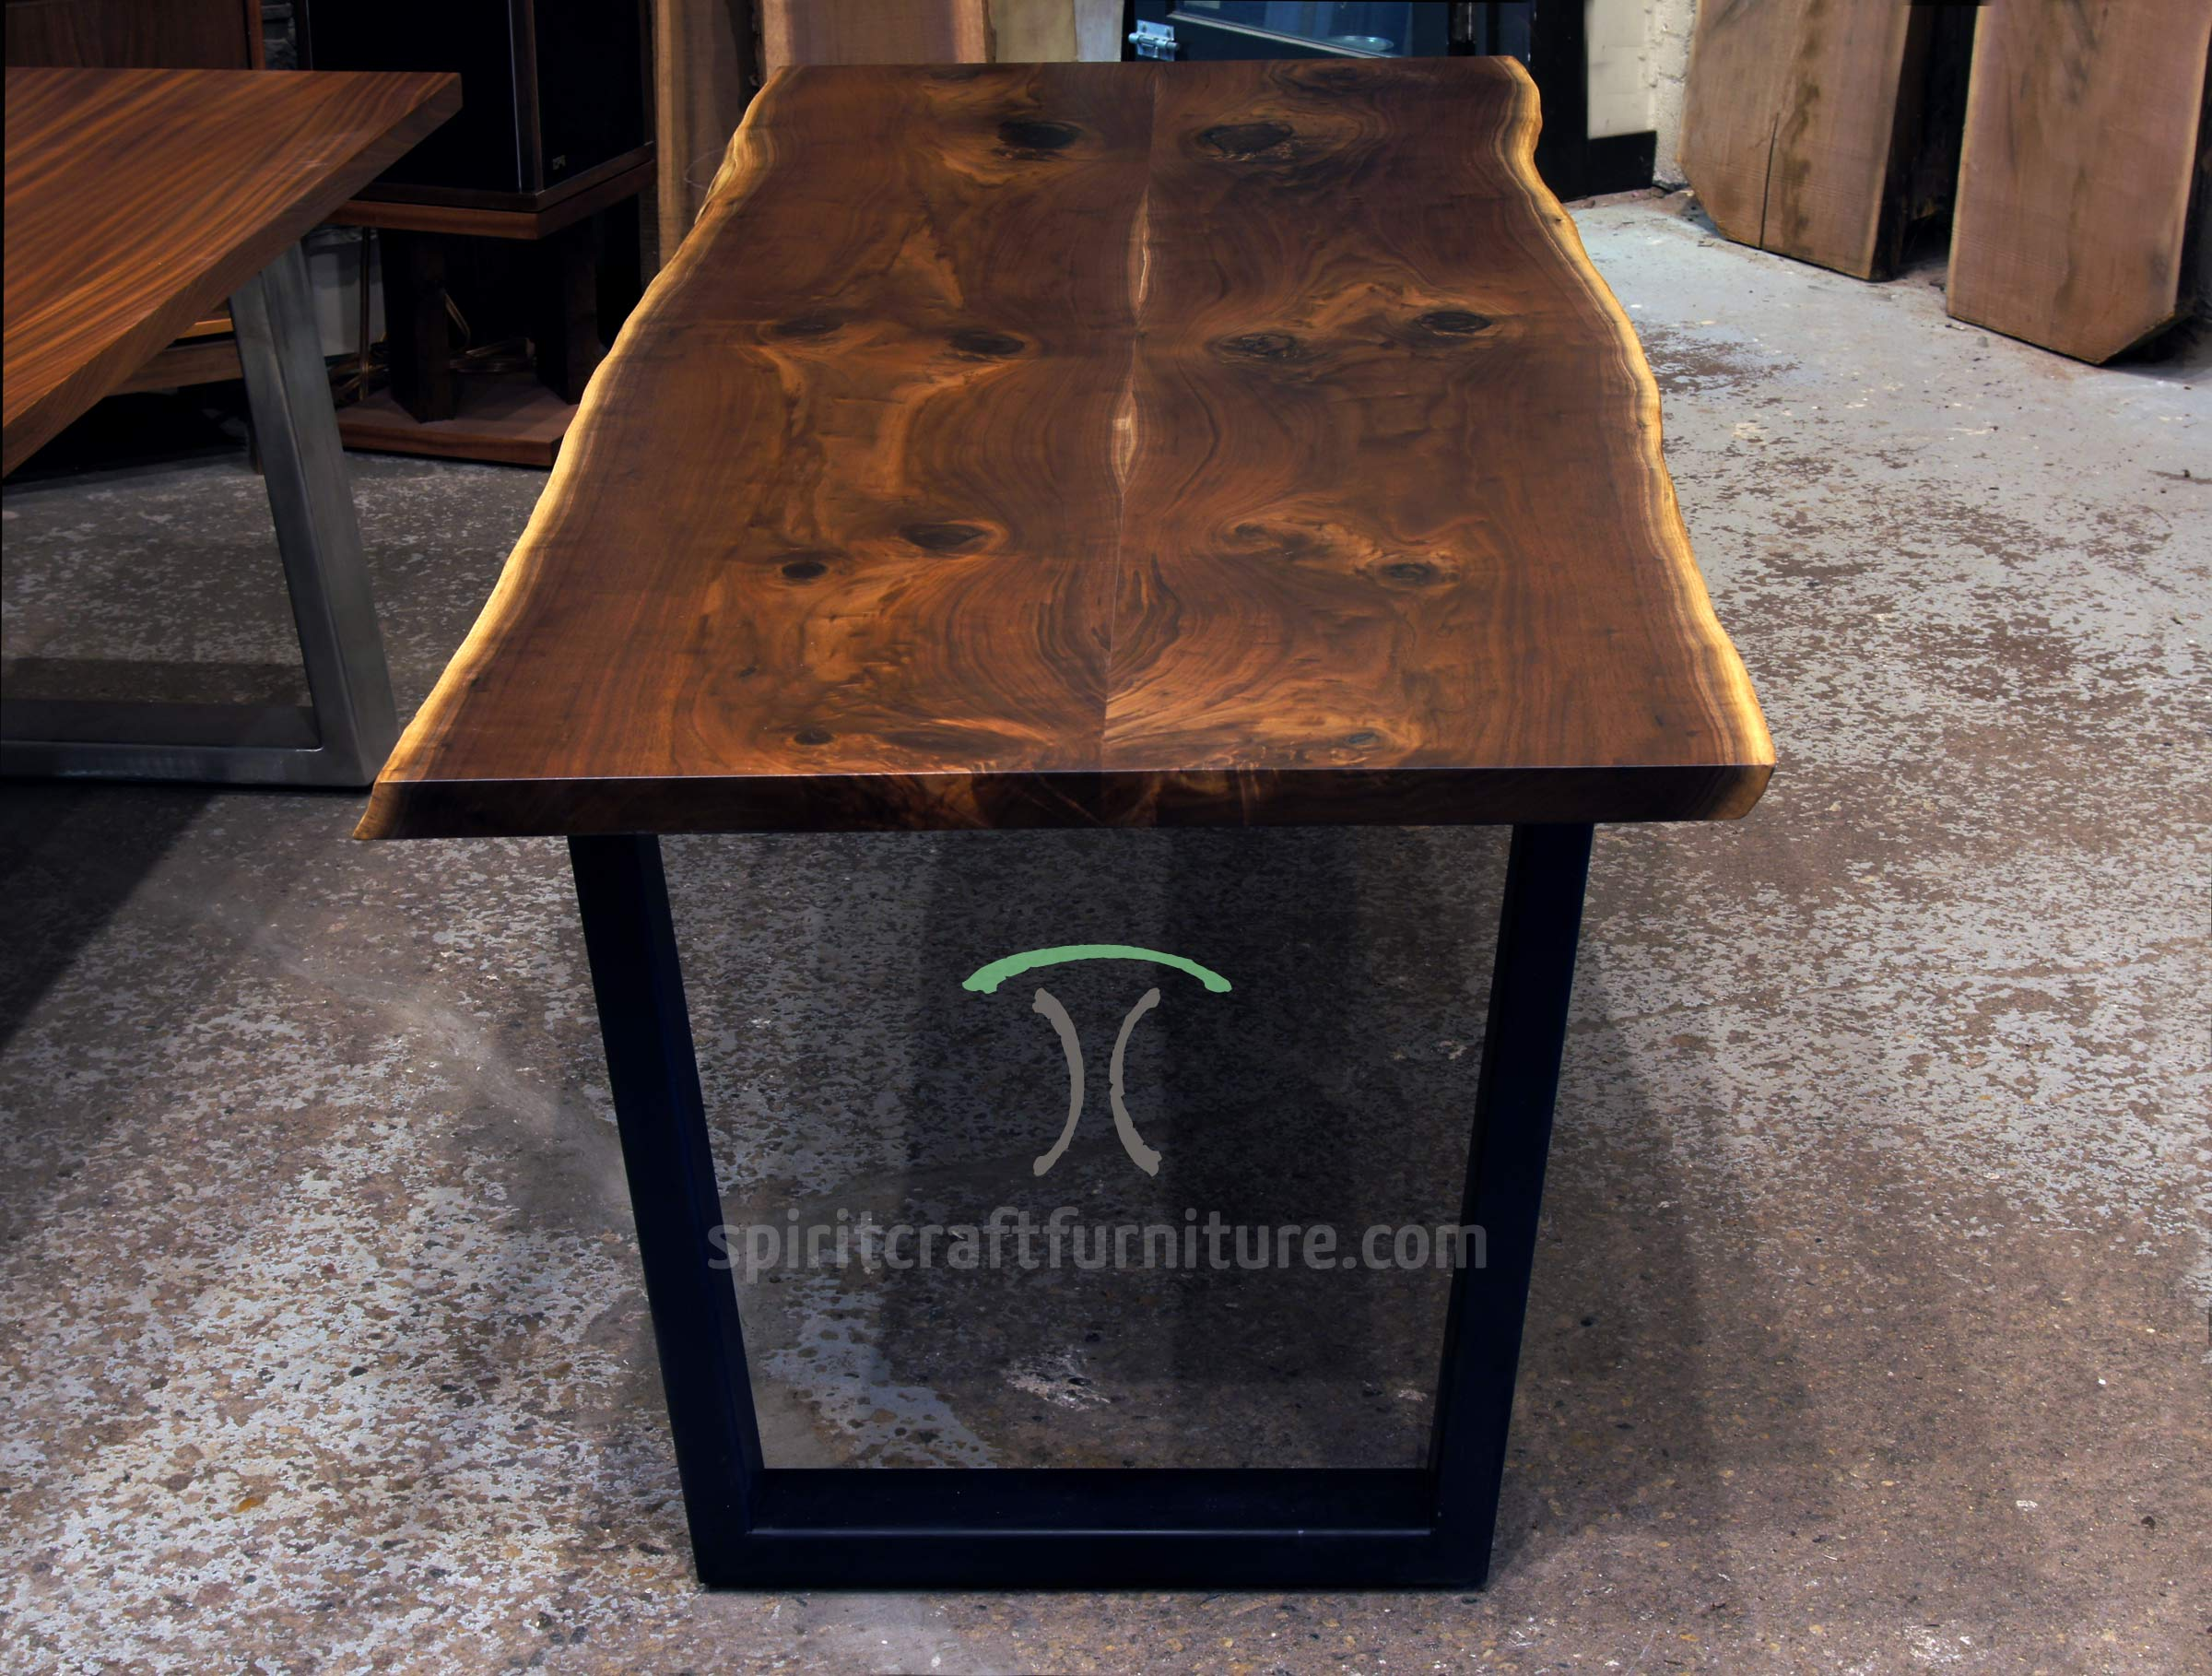 Rescued Black Walnut live edge dining table and Bench on thick steel trapezoid legs at Living Edge Furnitue Company, East Dundee, IL.